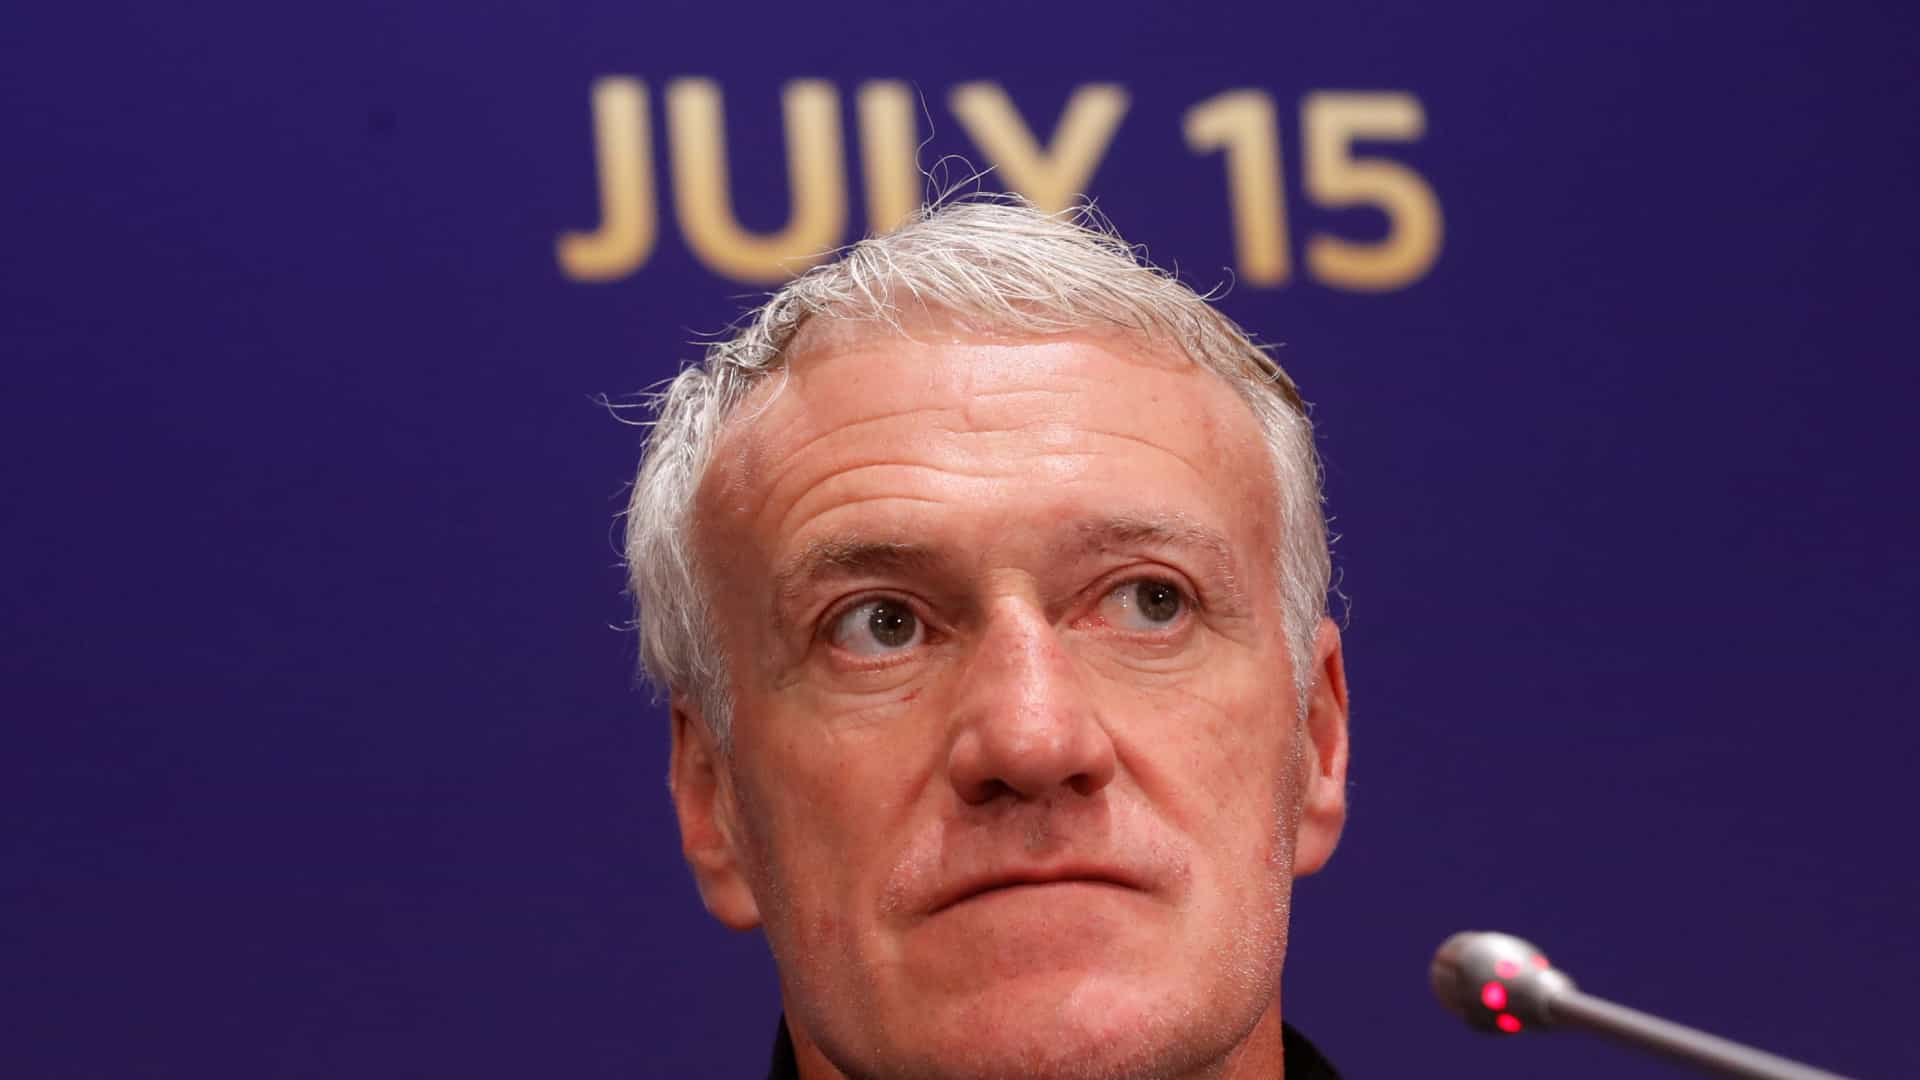 Na véspera da final do Mundial, Deschamps recorda... Portugal